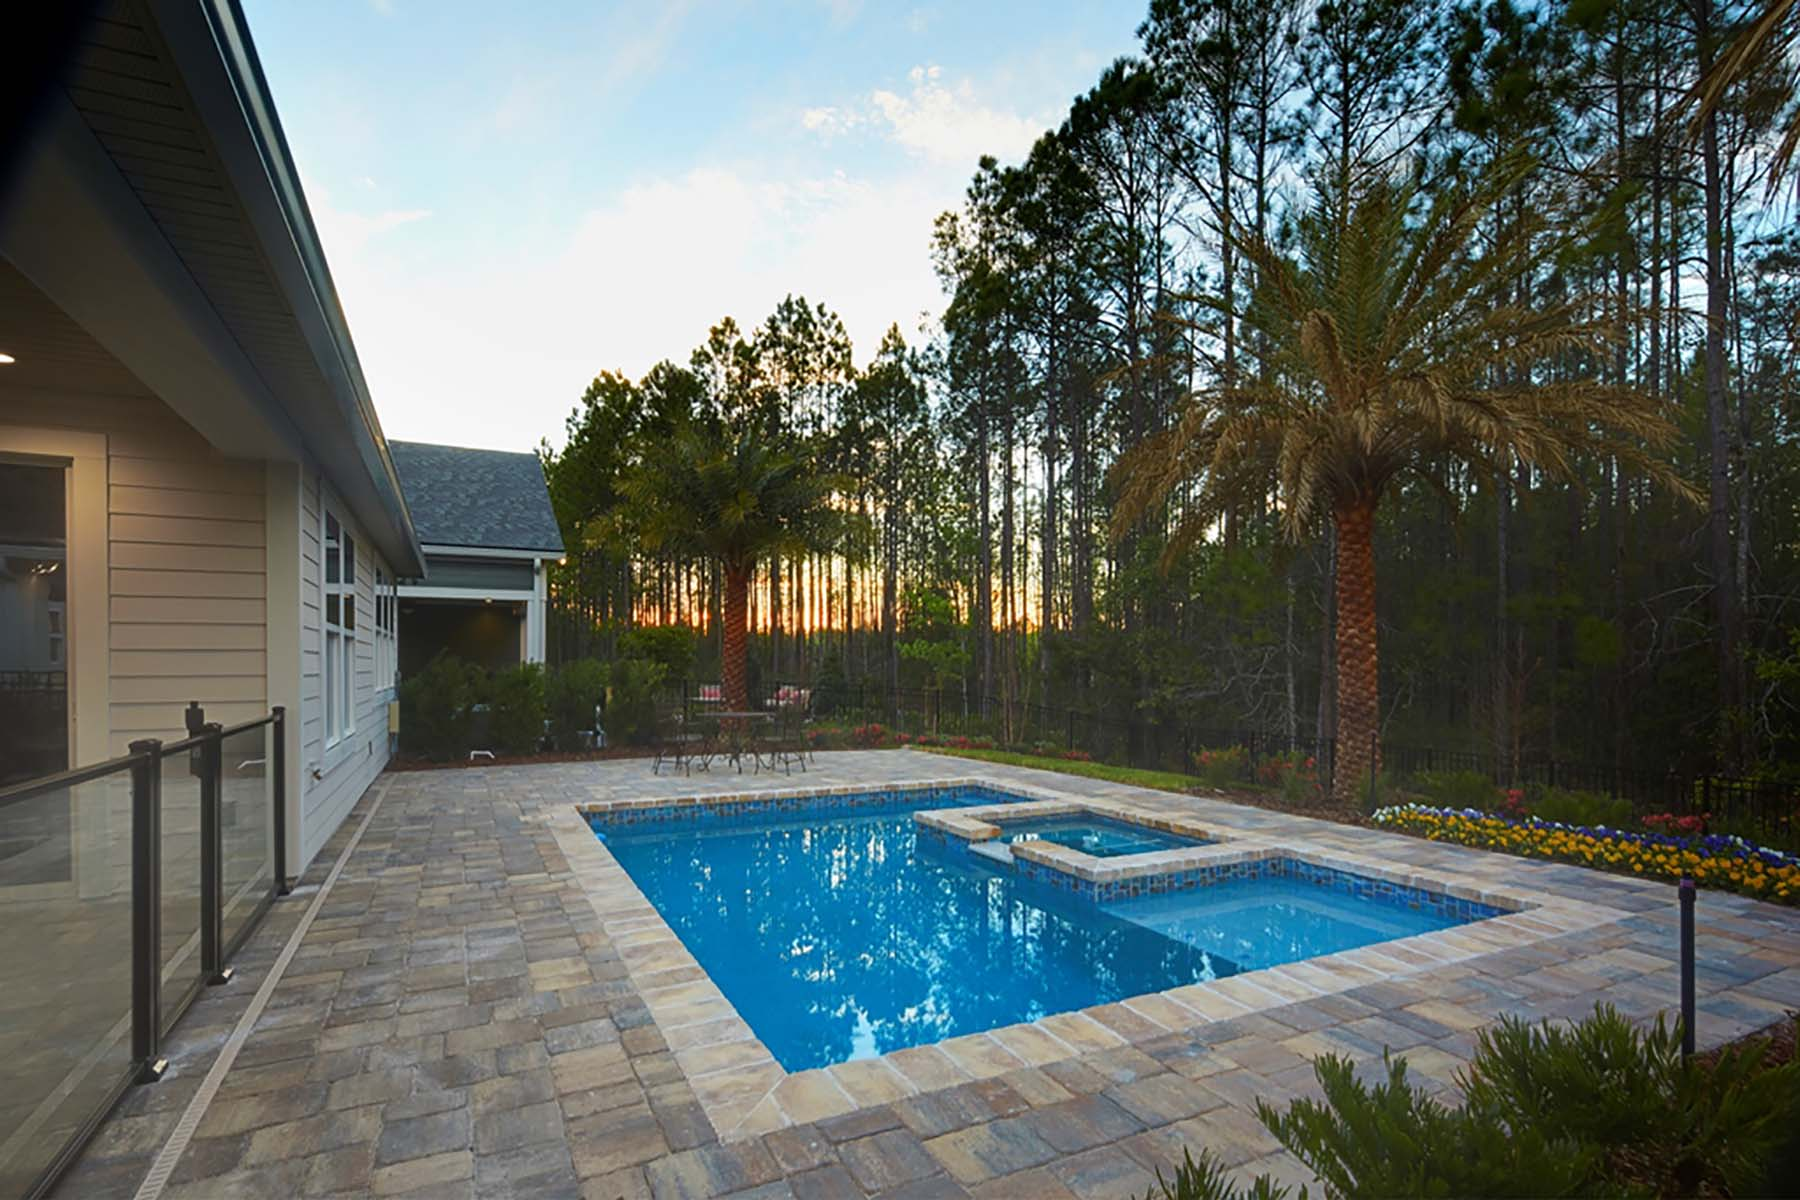 Beauclair Plan WaterFeatures at RiverTown - Arbors in St. Johns Florida by Mattamy Homes